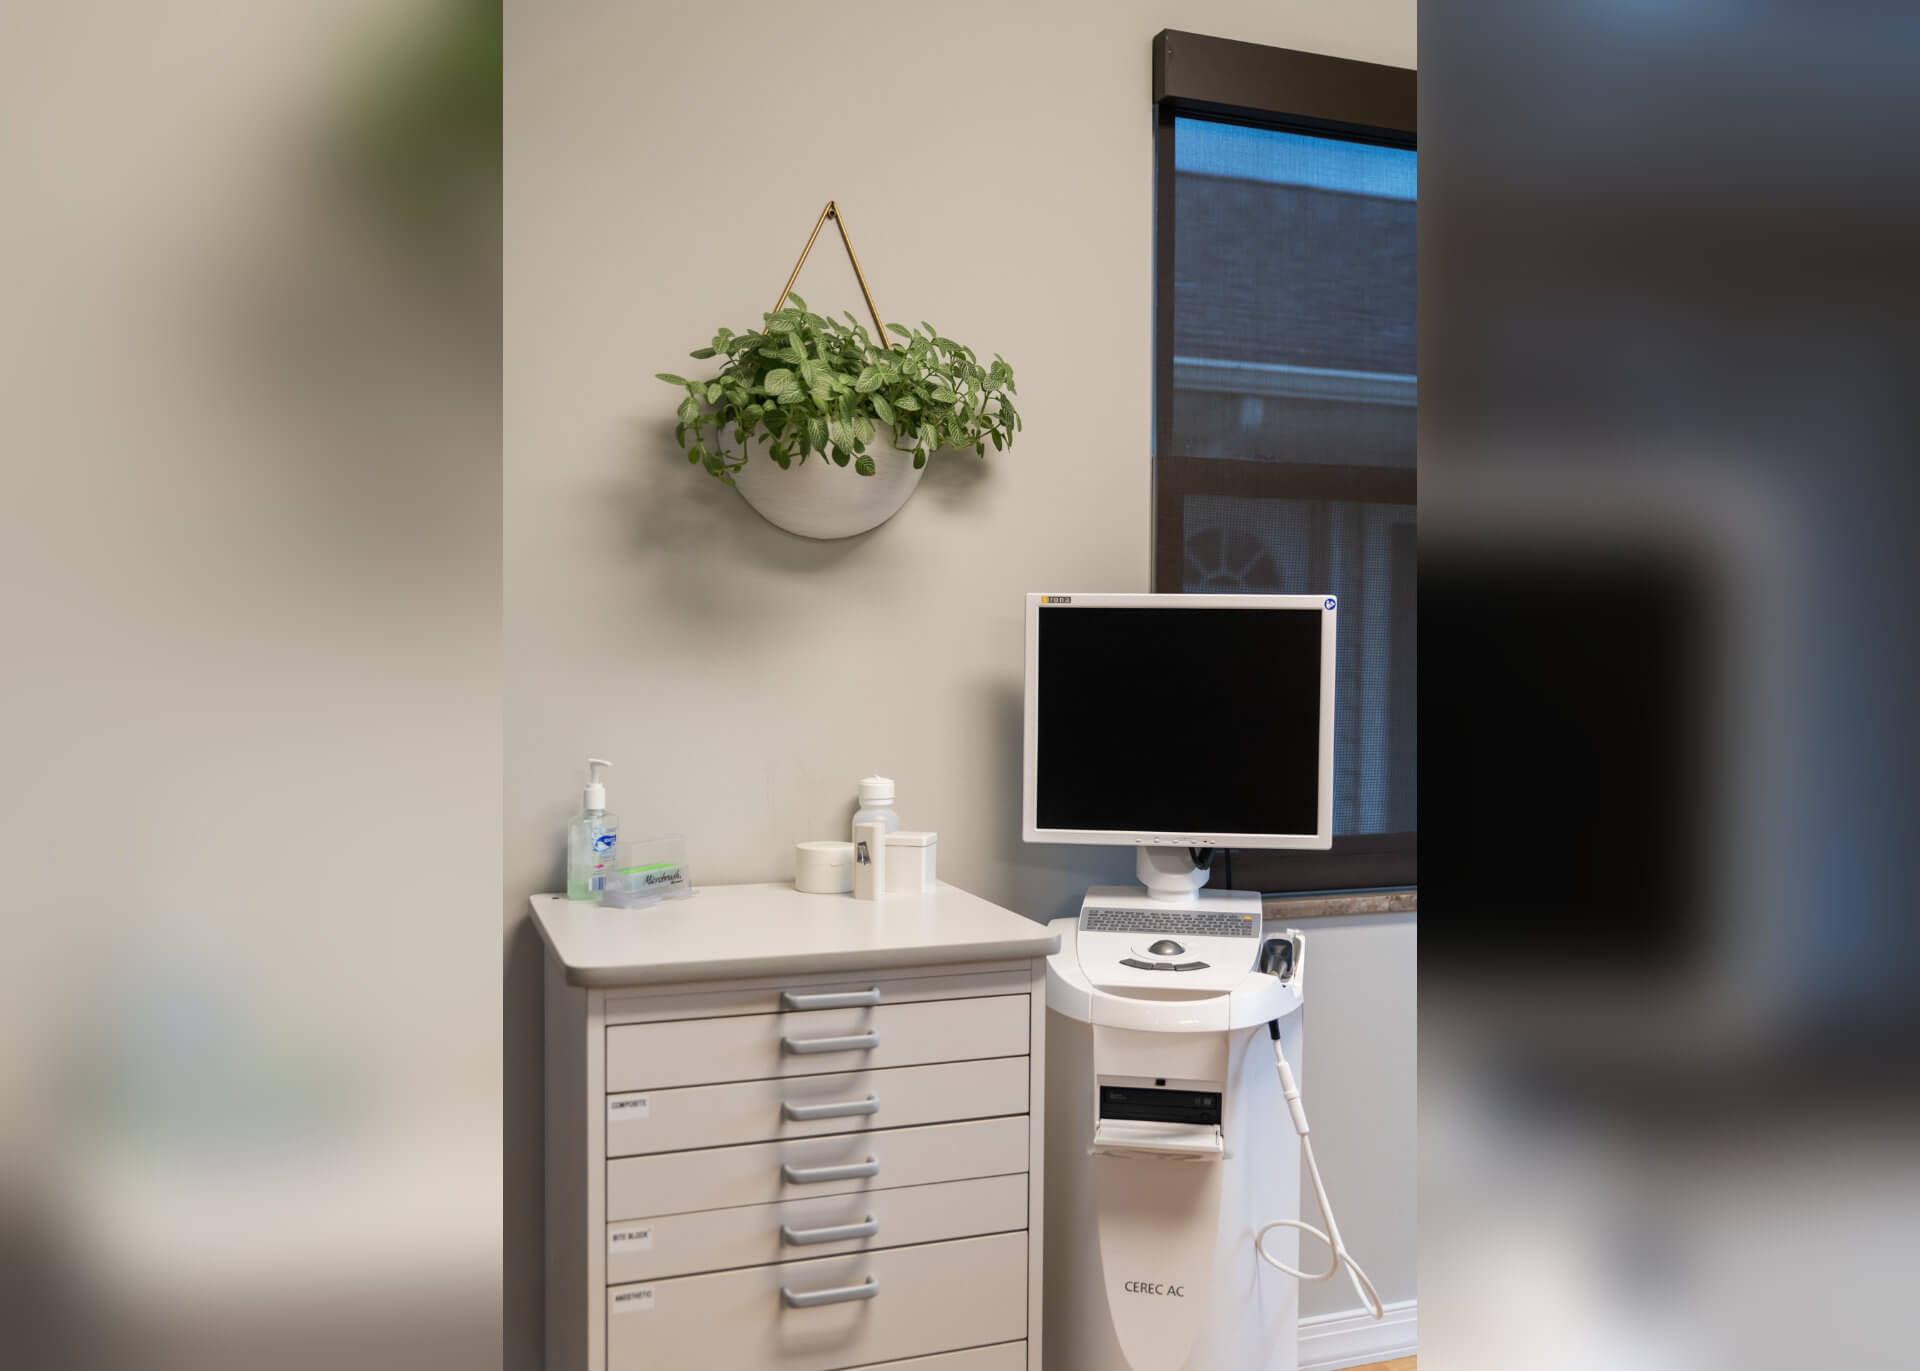 Our office is clean and welcoming to all patients